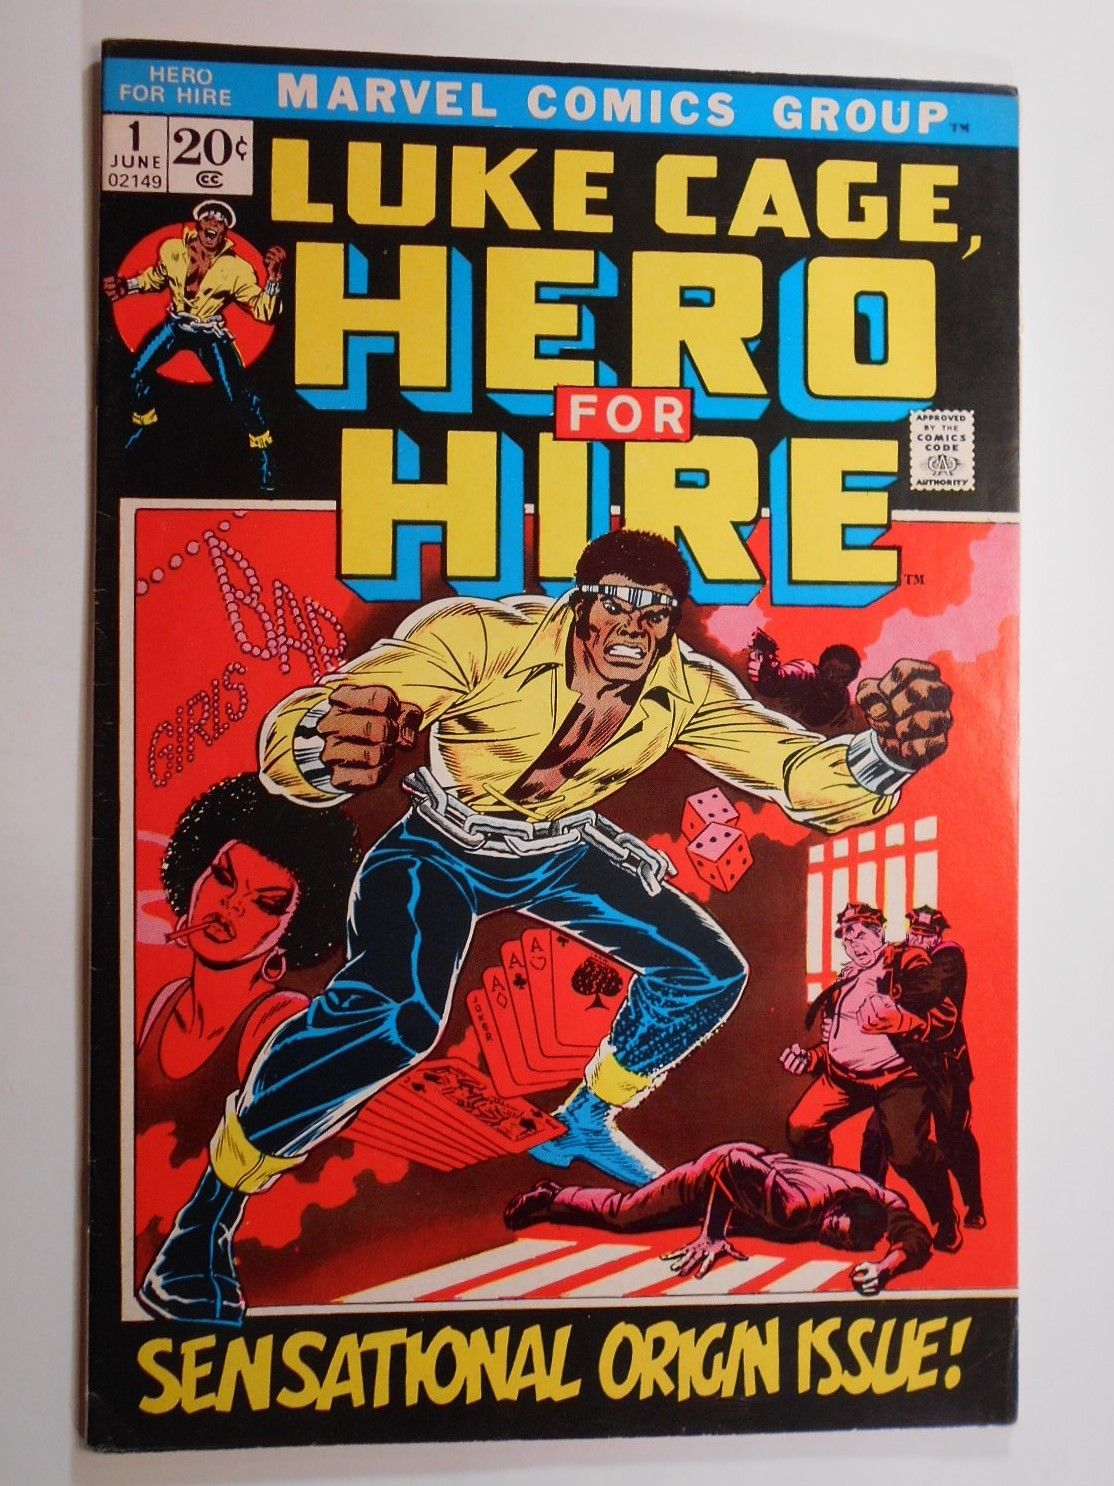 LUKE CAGE, HERO FOR HIRE 1 (Marvel 1972) KEY #1 Origin Issue / Power Man Netflix